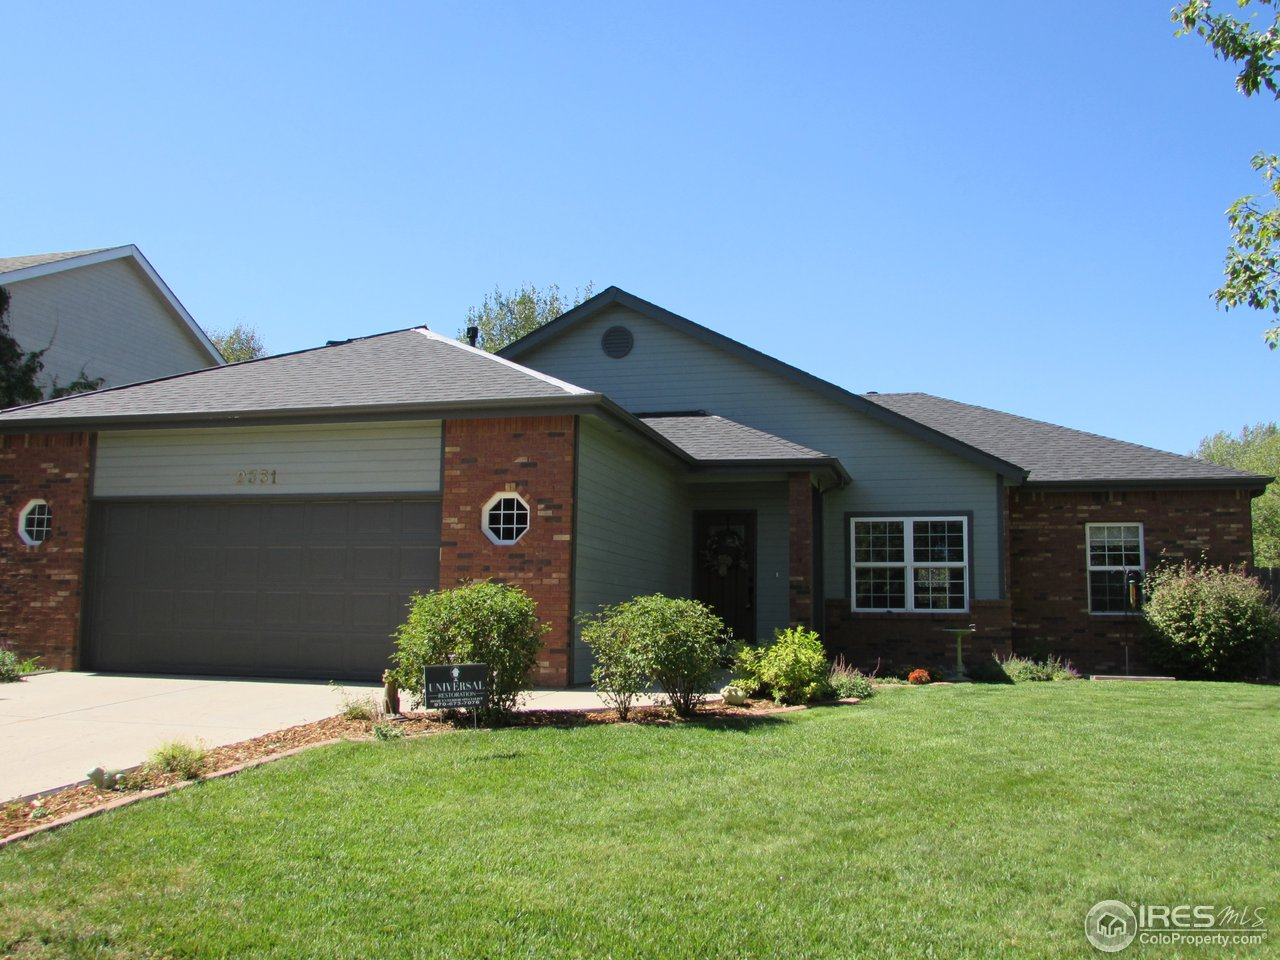 Lovely home in small subdivision of Virginia Hills South. Beautiful wood floors, see thru fireplace, very spacious bedrooms. Master has massive walk-in closet, 5 piece bath,large Jacuzzi tub. Huge kitchen with abundant cupboards & counter space. Breakfast bar & a nice sunny area that can be a breakfast nook or pretty sitting area to relax with morning coffee. Formal dining room with fireplace. Brand new impact resistant roof. Oversize garage, very nice rear deck. Seller is licensed broker.